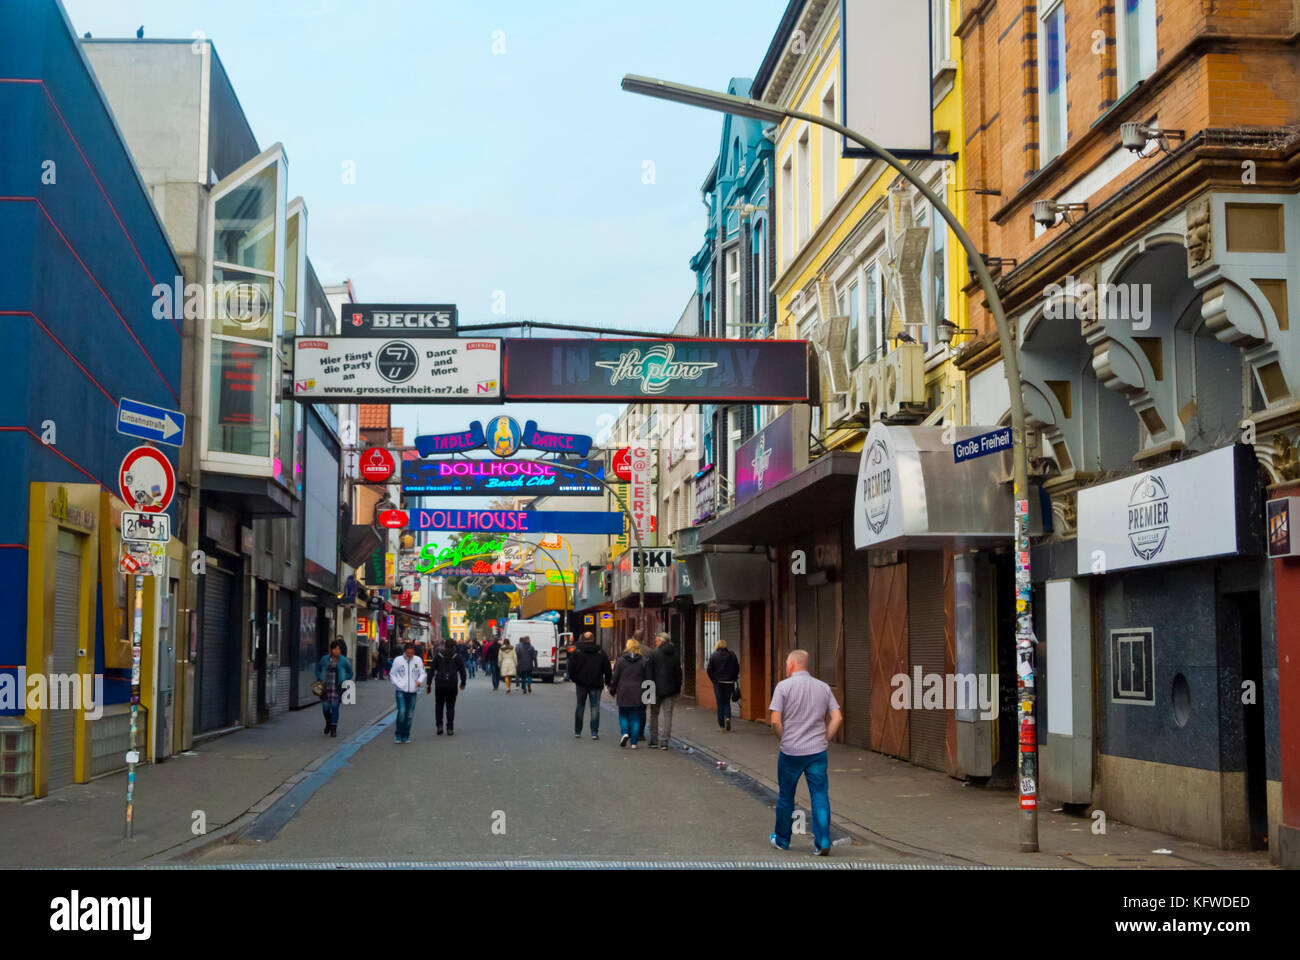 Grosse Freiheit street, St Pauli district, Hamburg, Germany - Stock Image